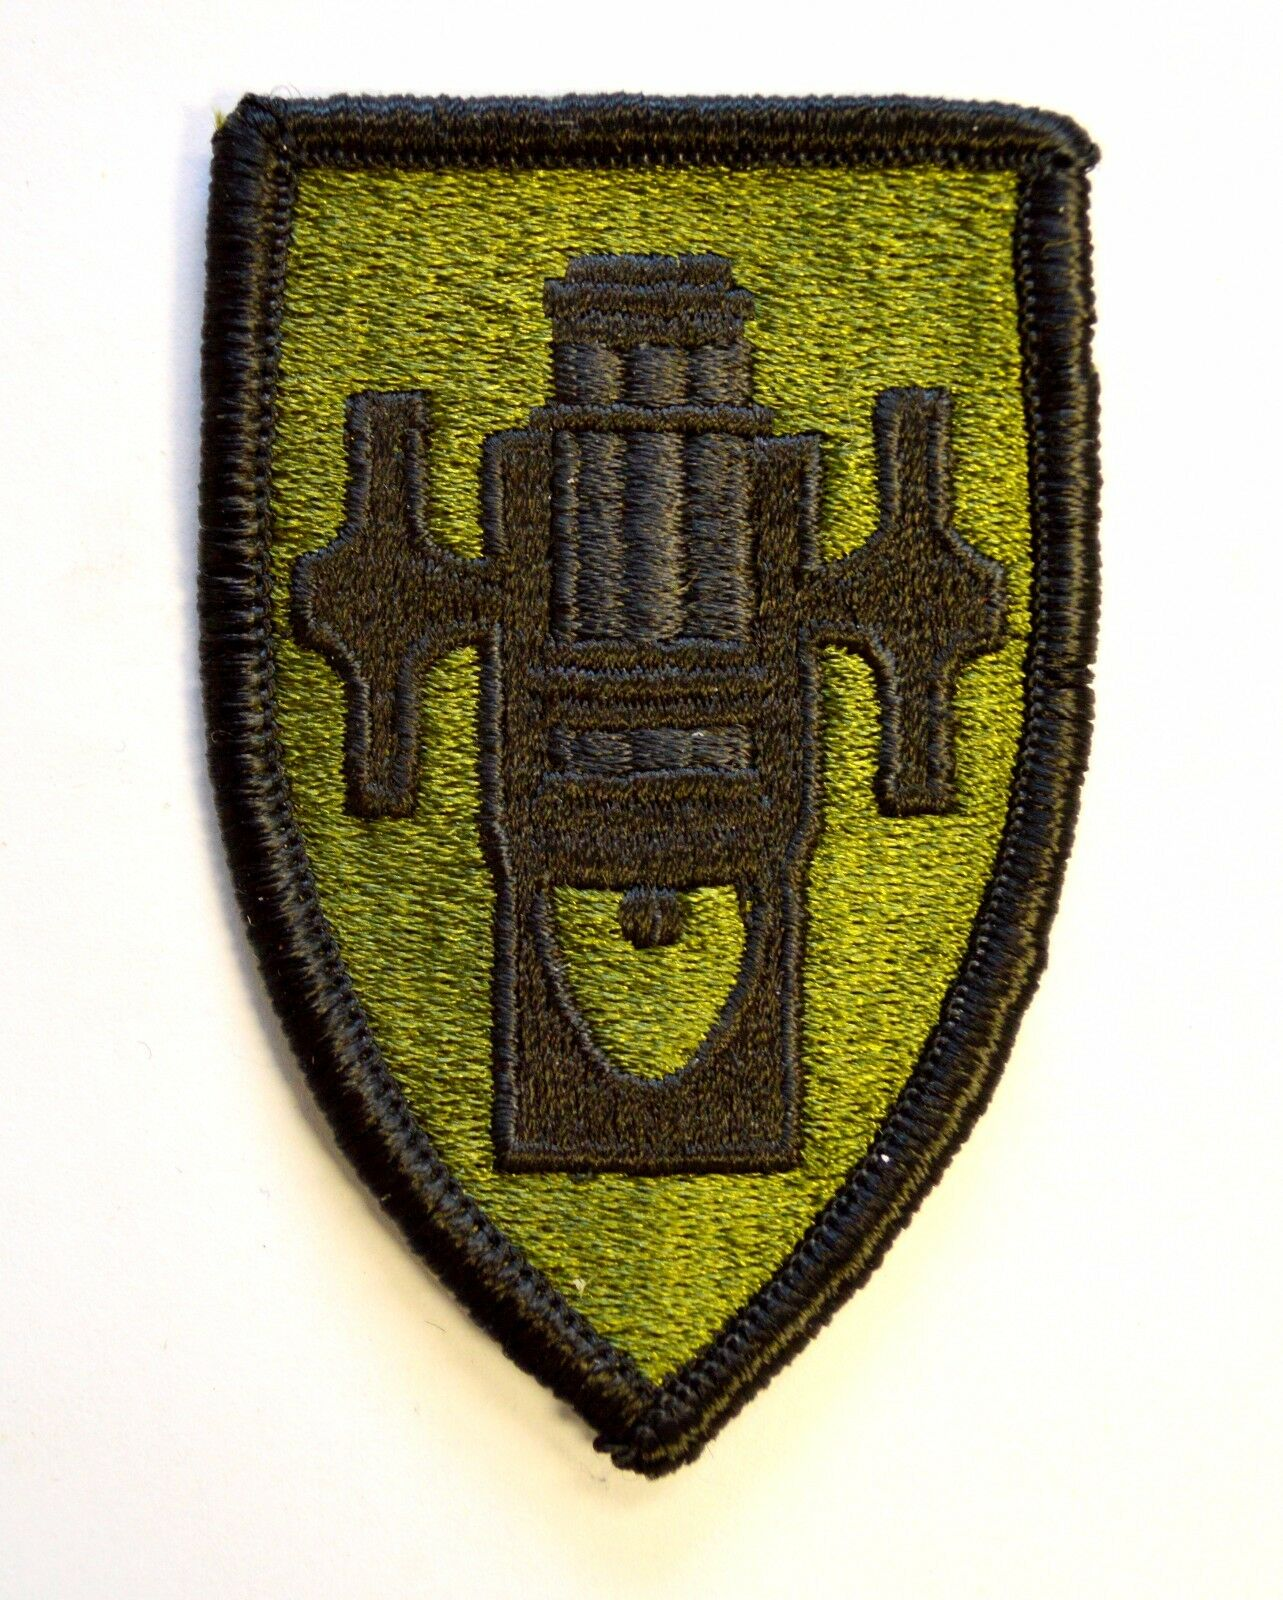 us army field artillery school patch subdued color rare for sale online ebay ebay